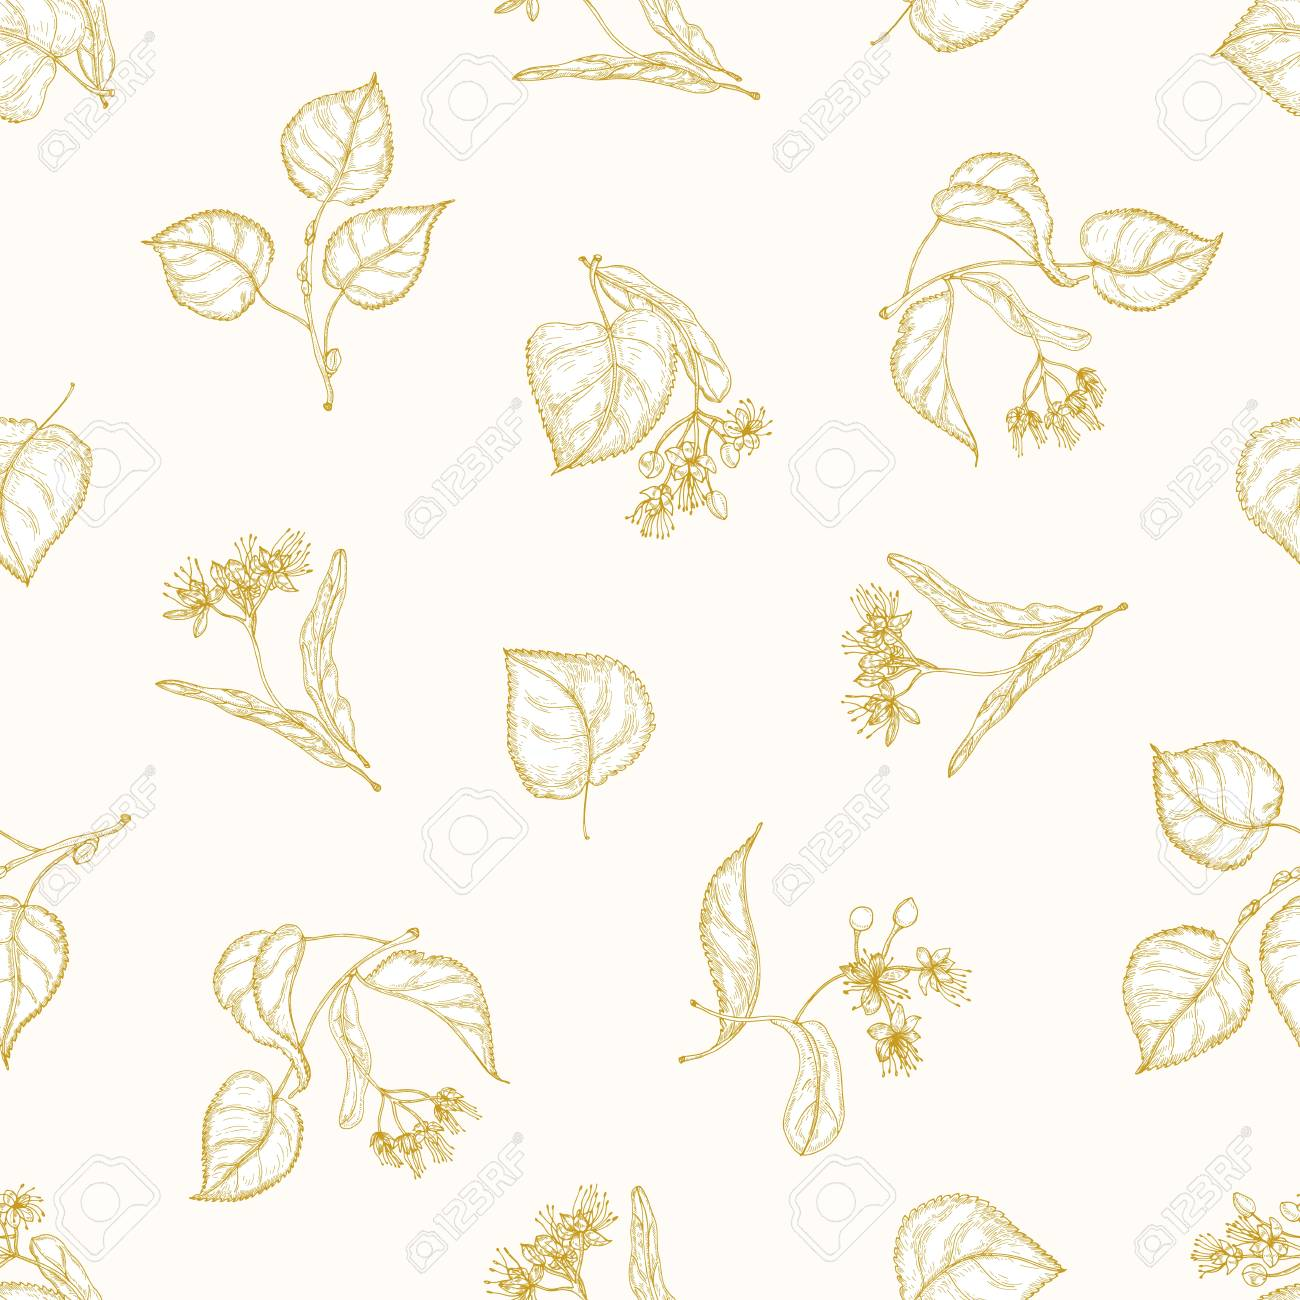 Monochrome seamless pattern with linden leaves and inflorescences hand drawn with contour lines on light background. Elegant vector illustration in antique style for fabric print, wrapping paper - 117295999